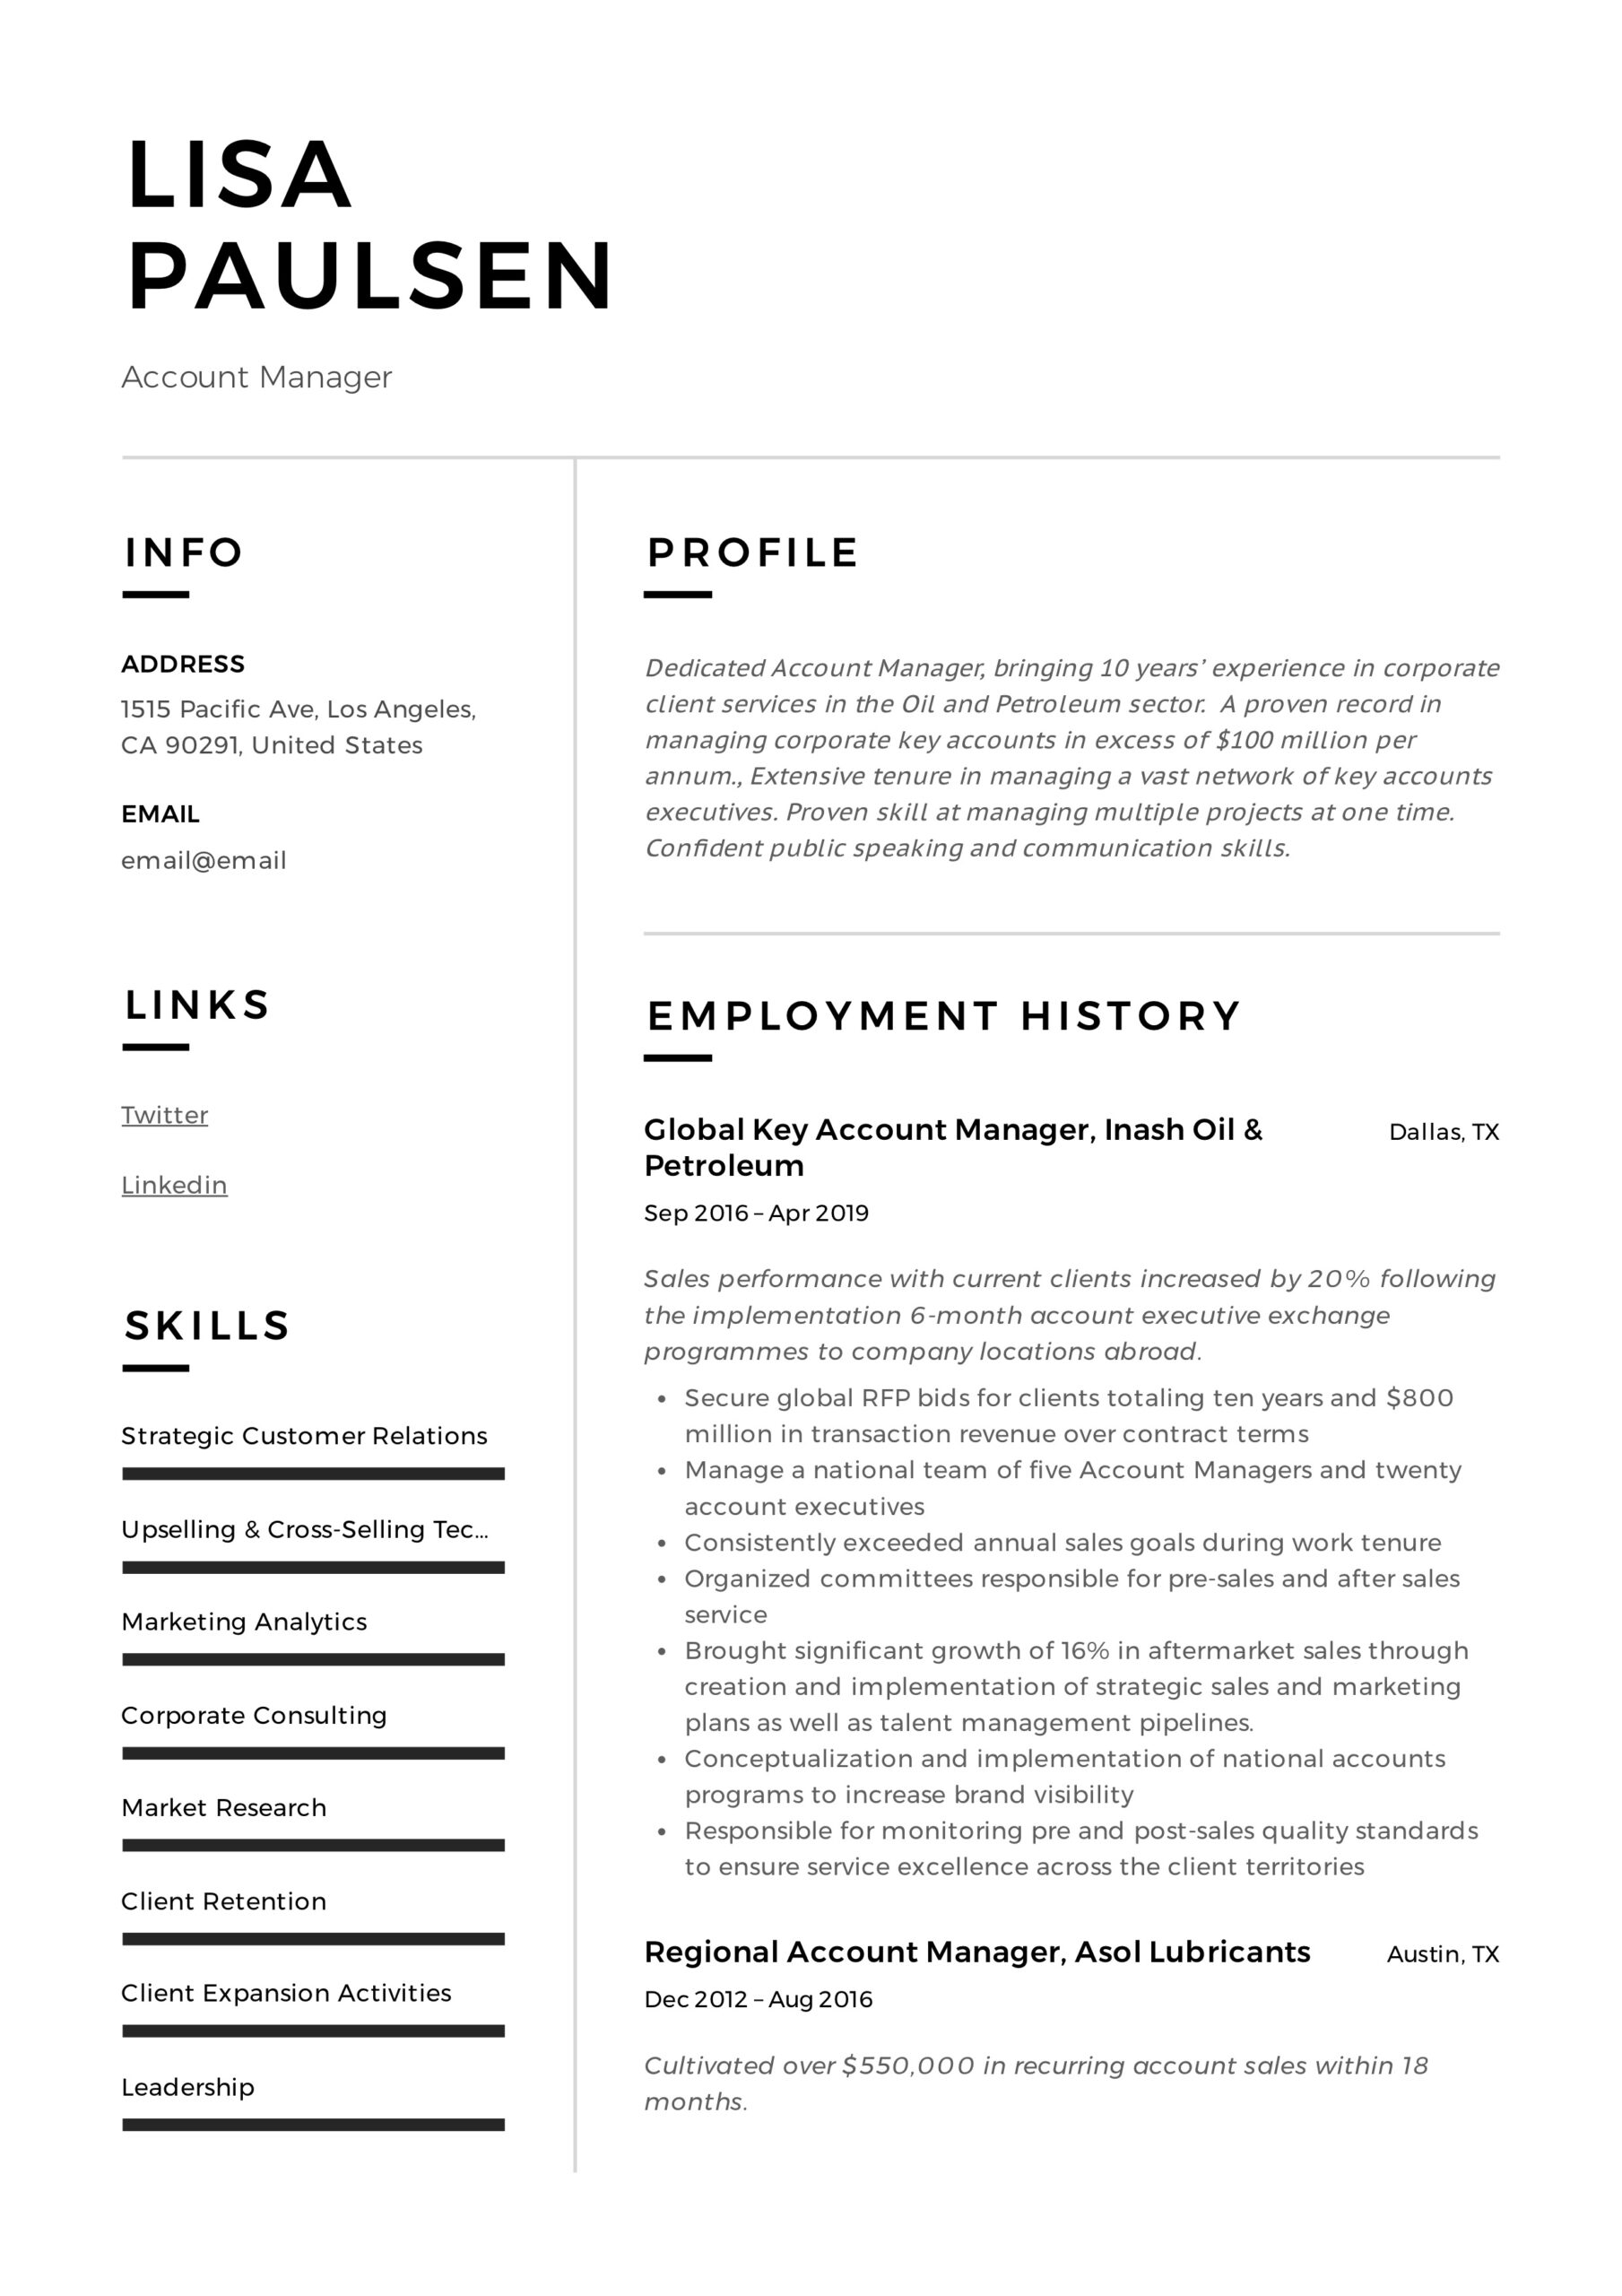 account manager resume writing guide examples example lisa paulsen blockchain for fresher Resume Account Manager Resume Example